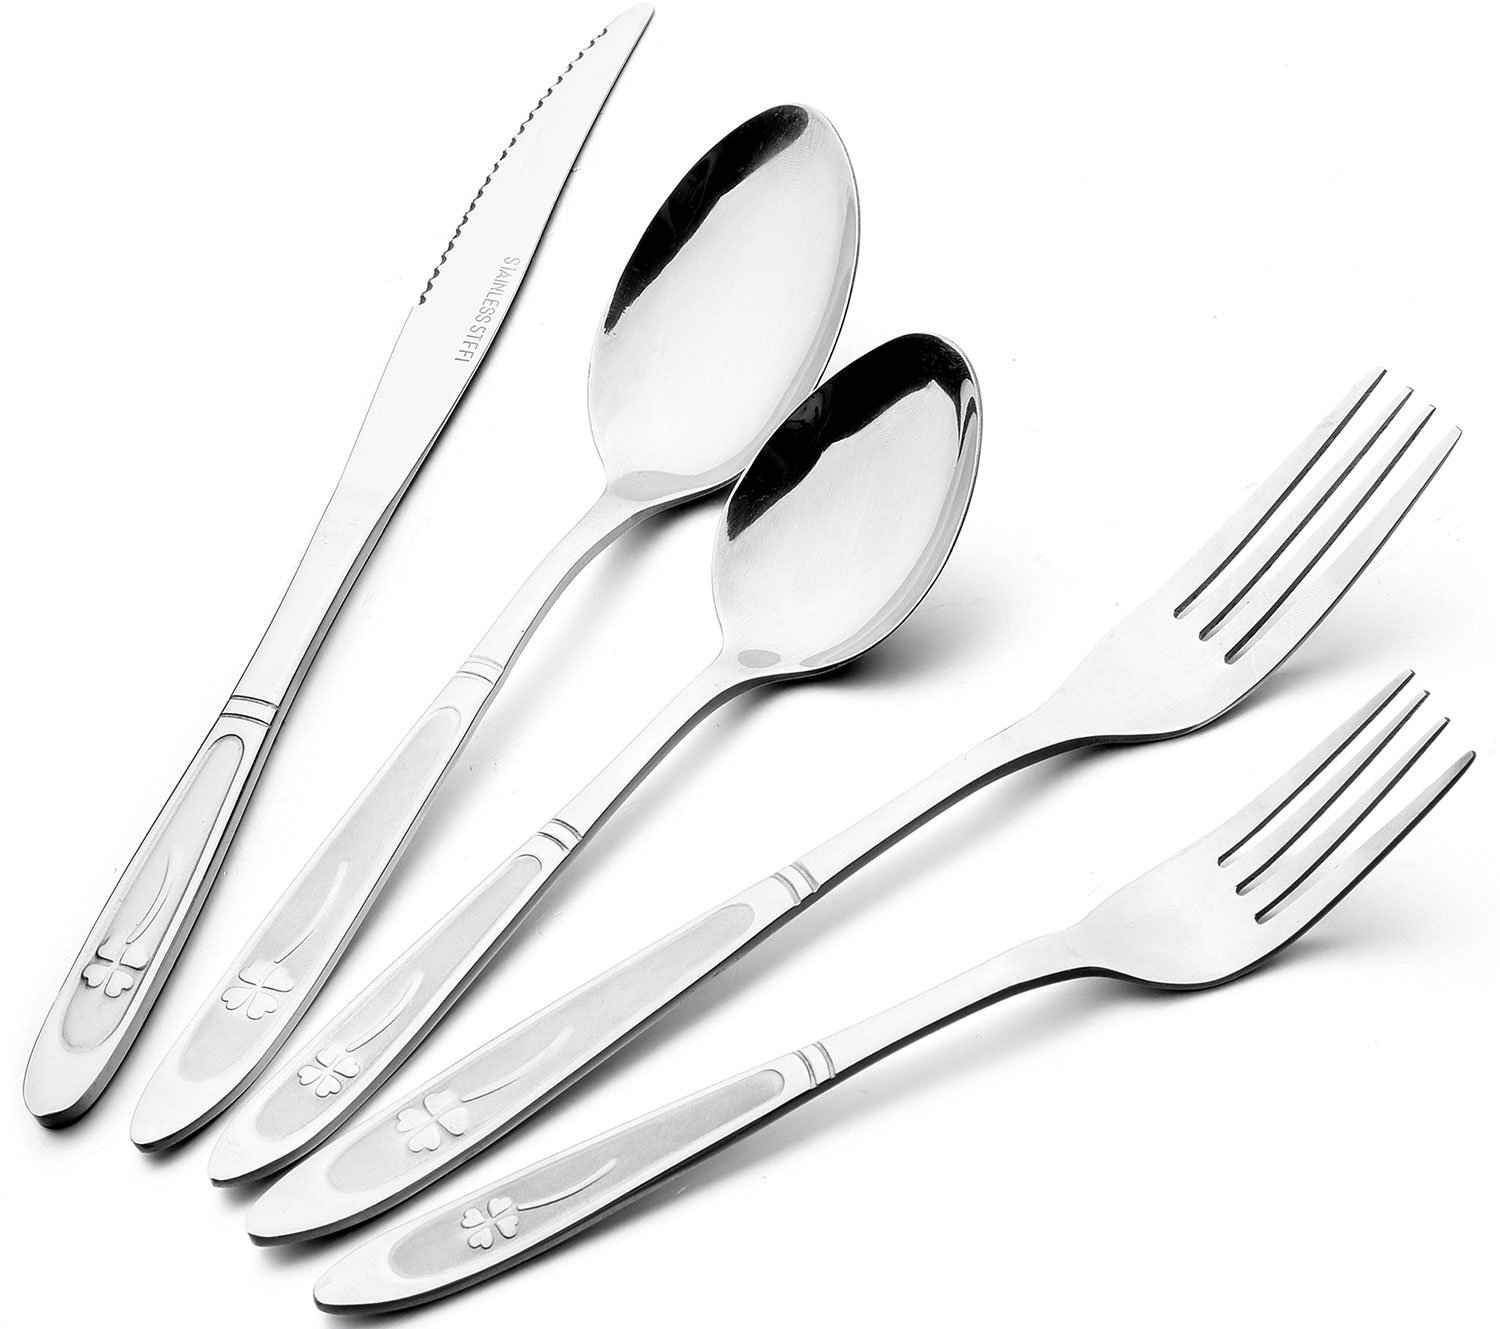 Flatware Cutlery Set, Wifond Stainless Steel Silverware Set for 4 - Mirror Polish Dishwasher Safe for Home Hotel Restaurant